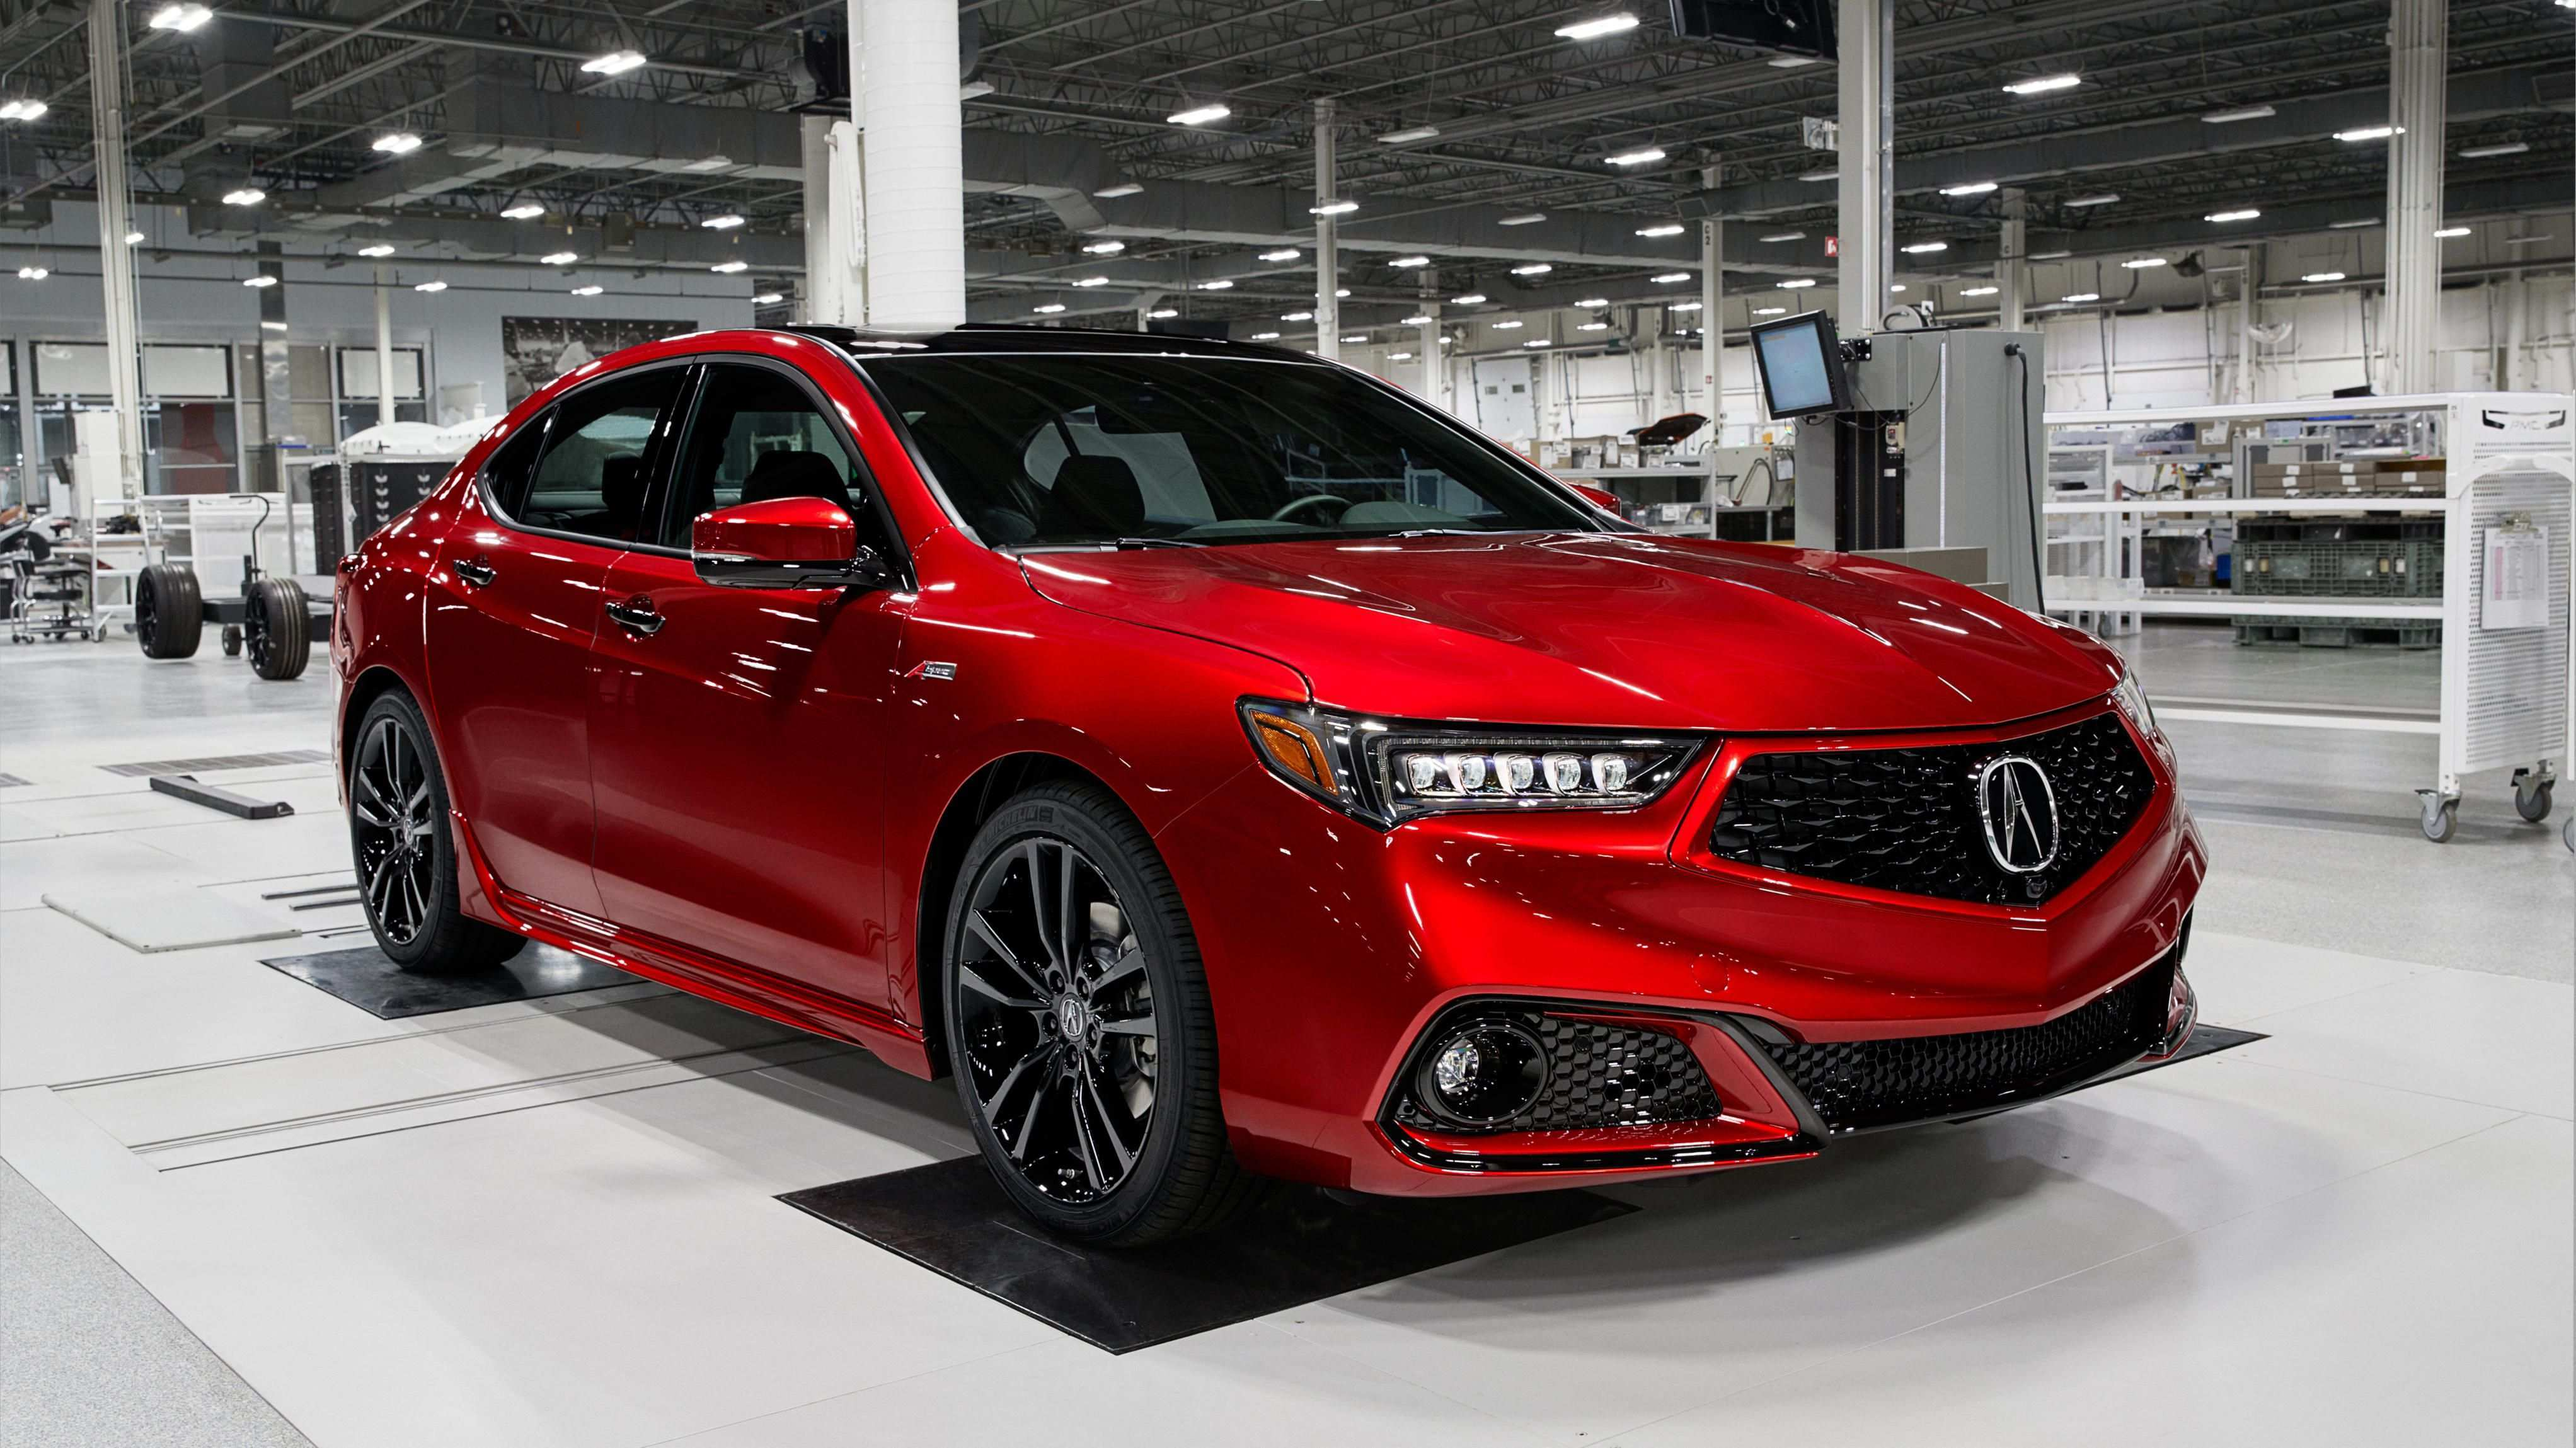 71 The 2020 Acura Tlx Pmc Edition Hp Model